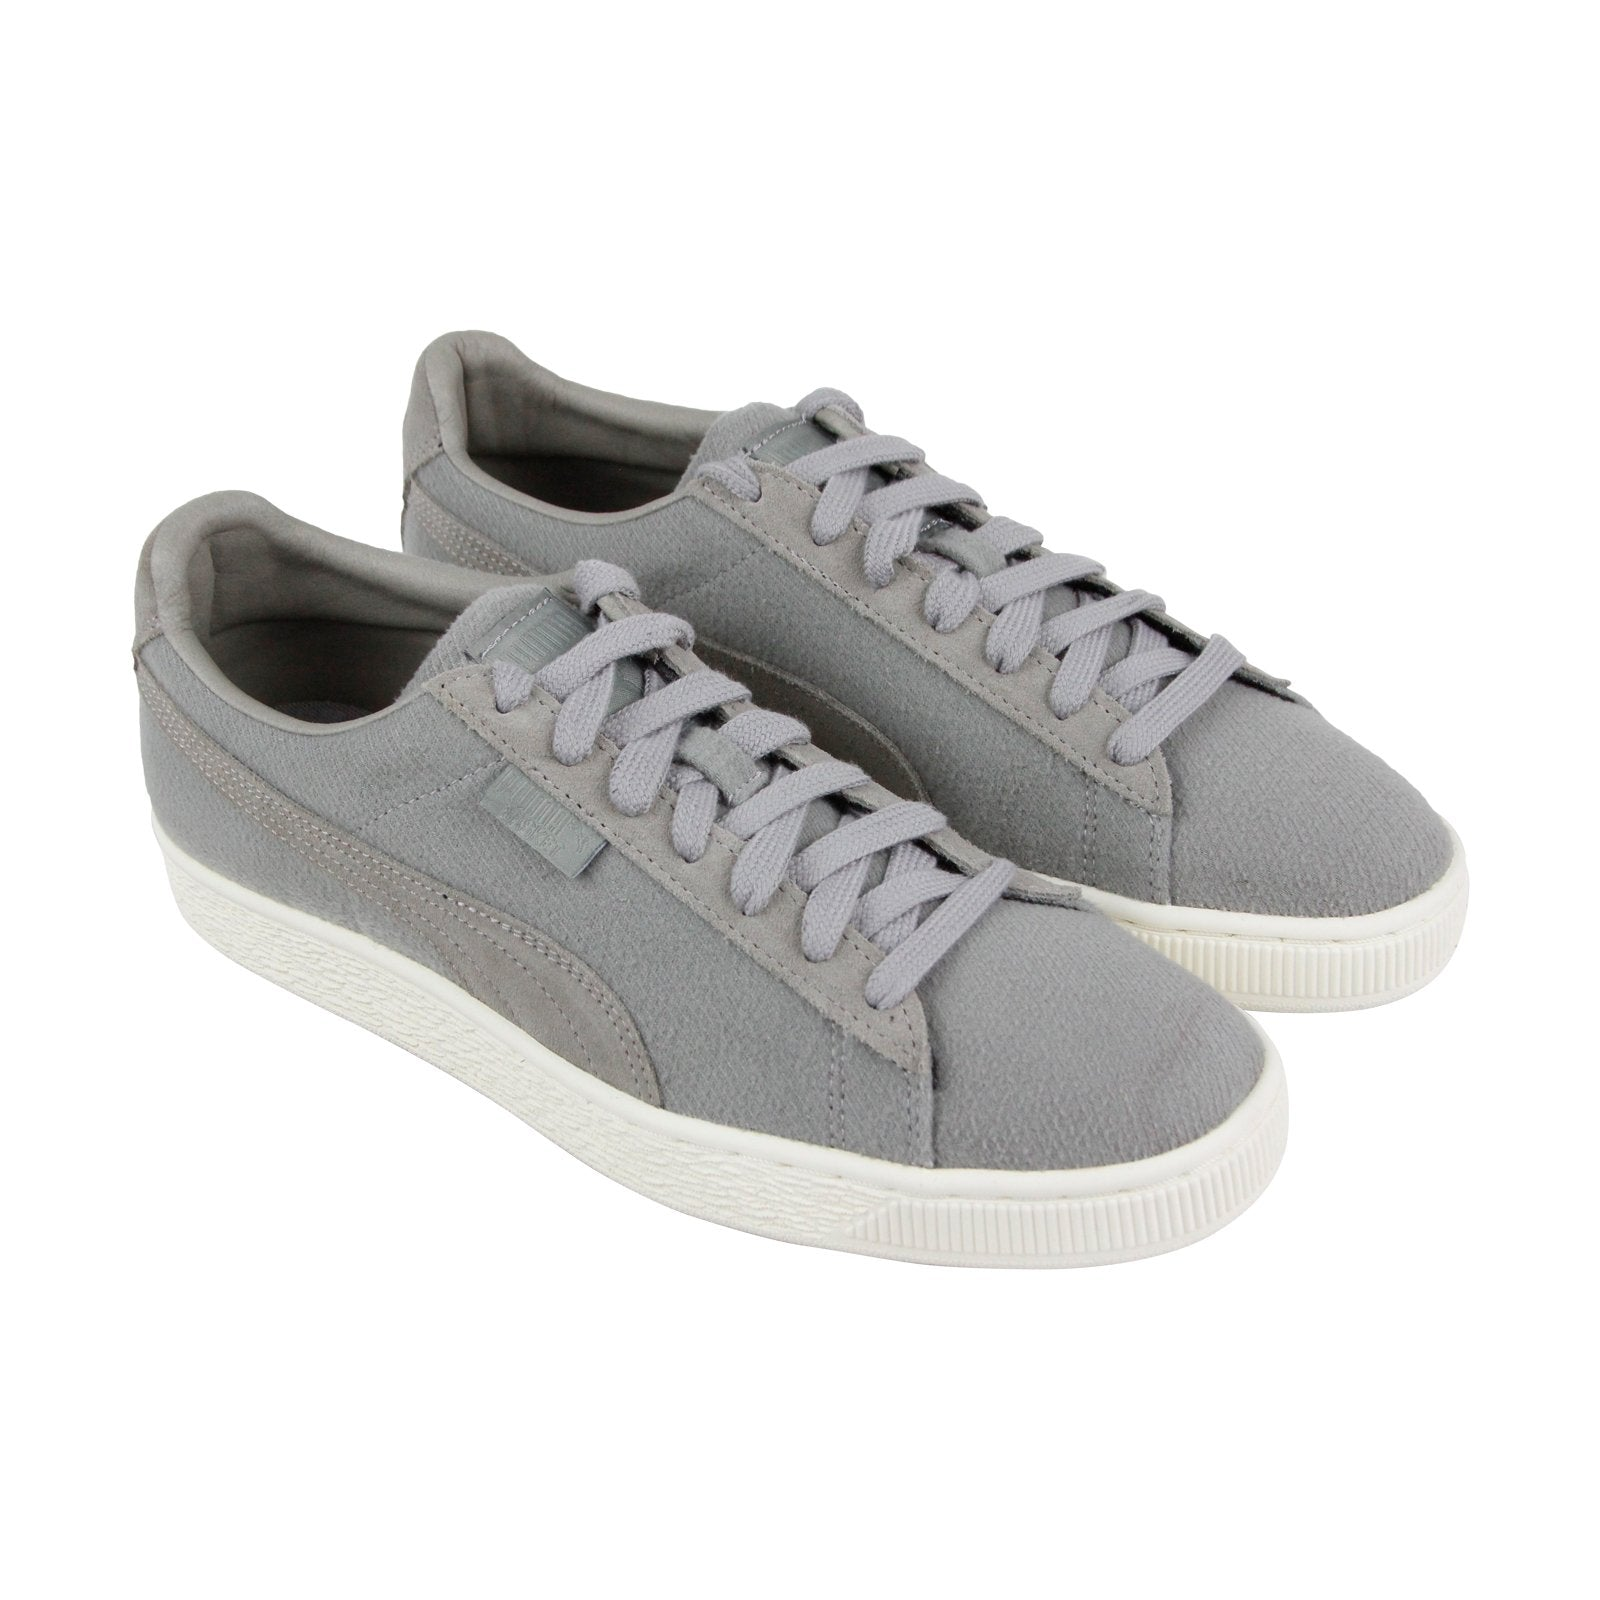 innovative design 51b78 c5c52 Puma Basket Classic Cocoon Mens Gray Textile Low Top Lace Up Sneakers Shoes